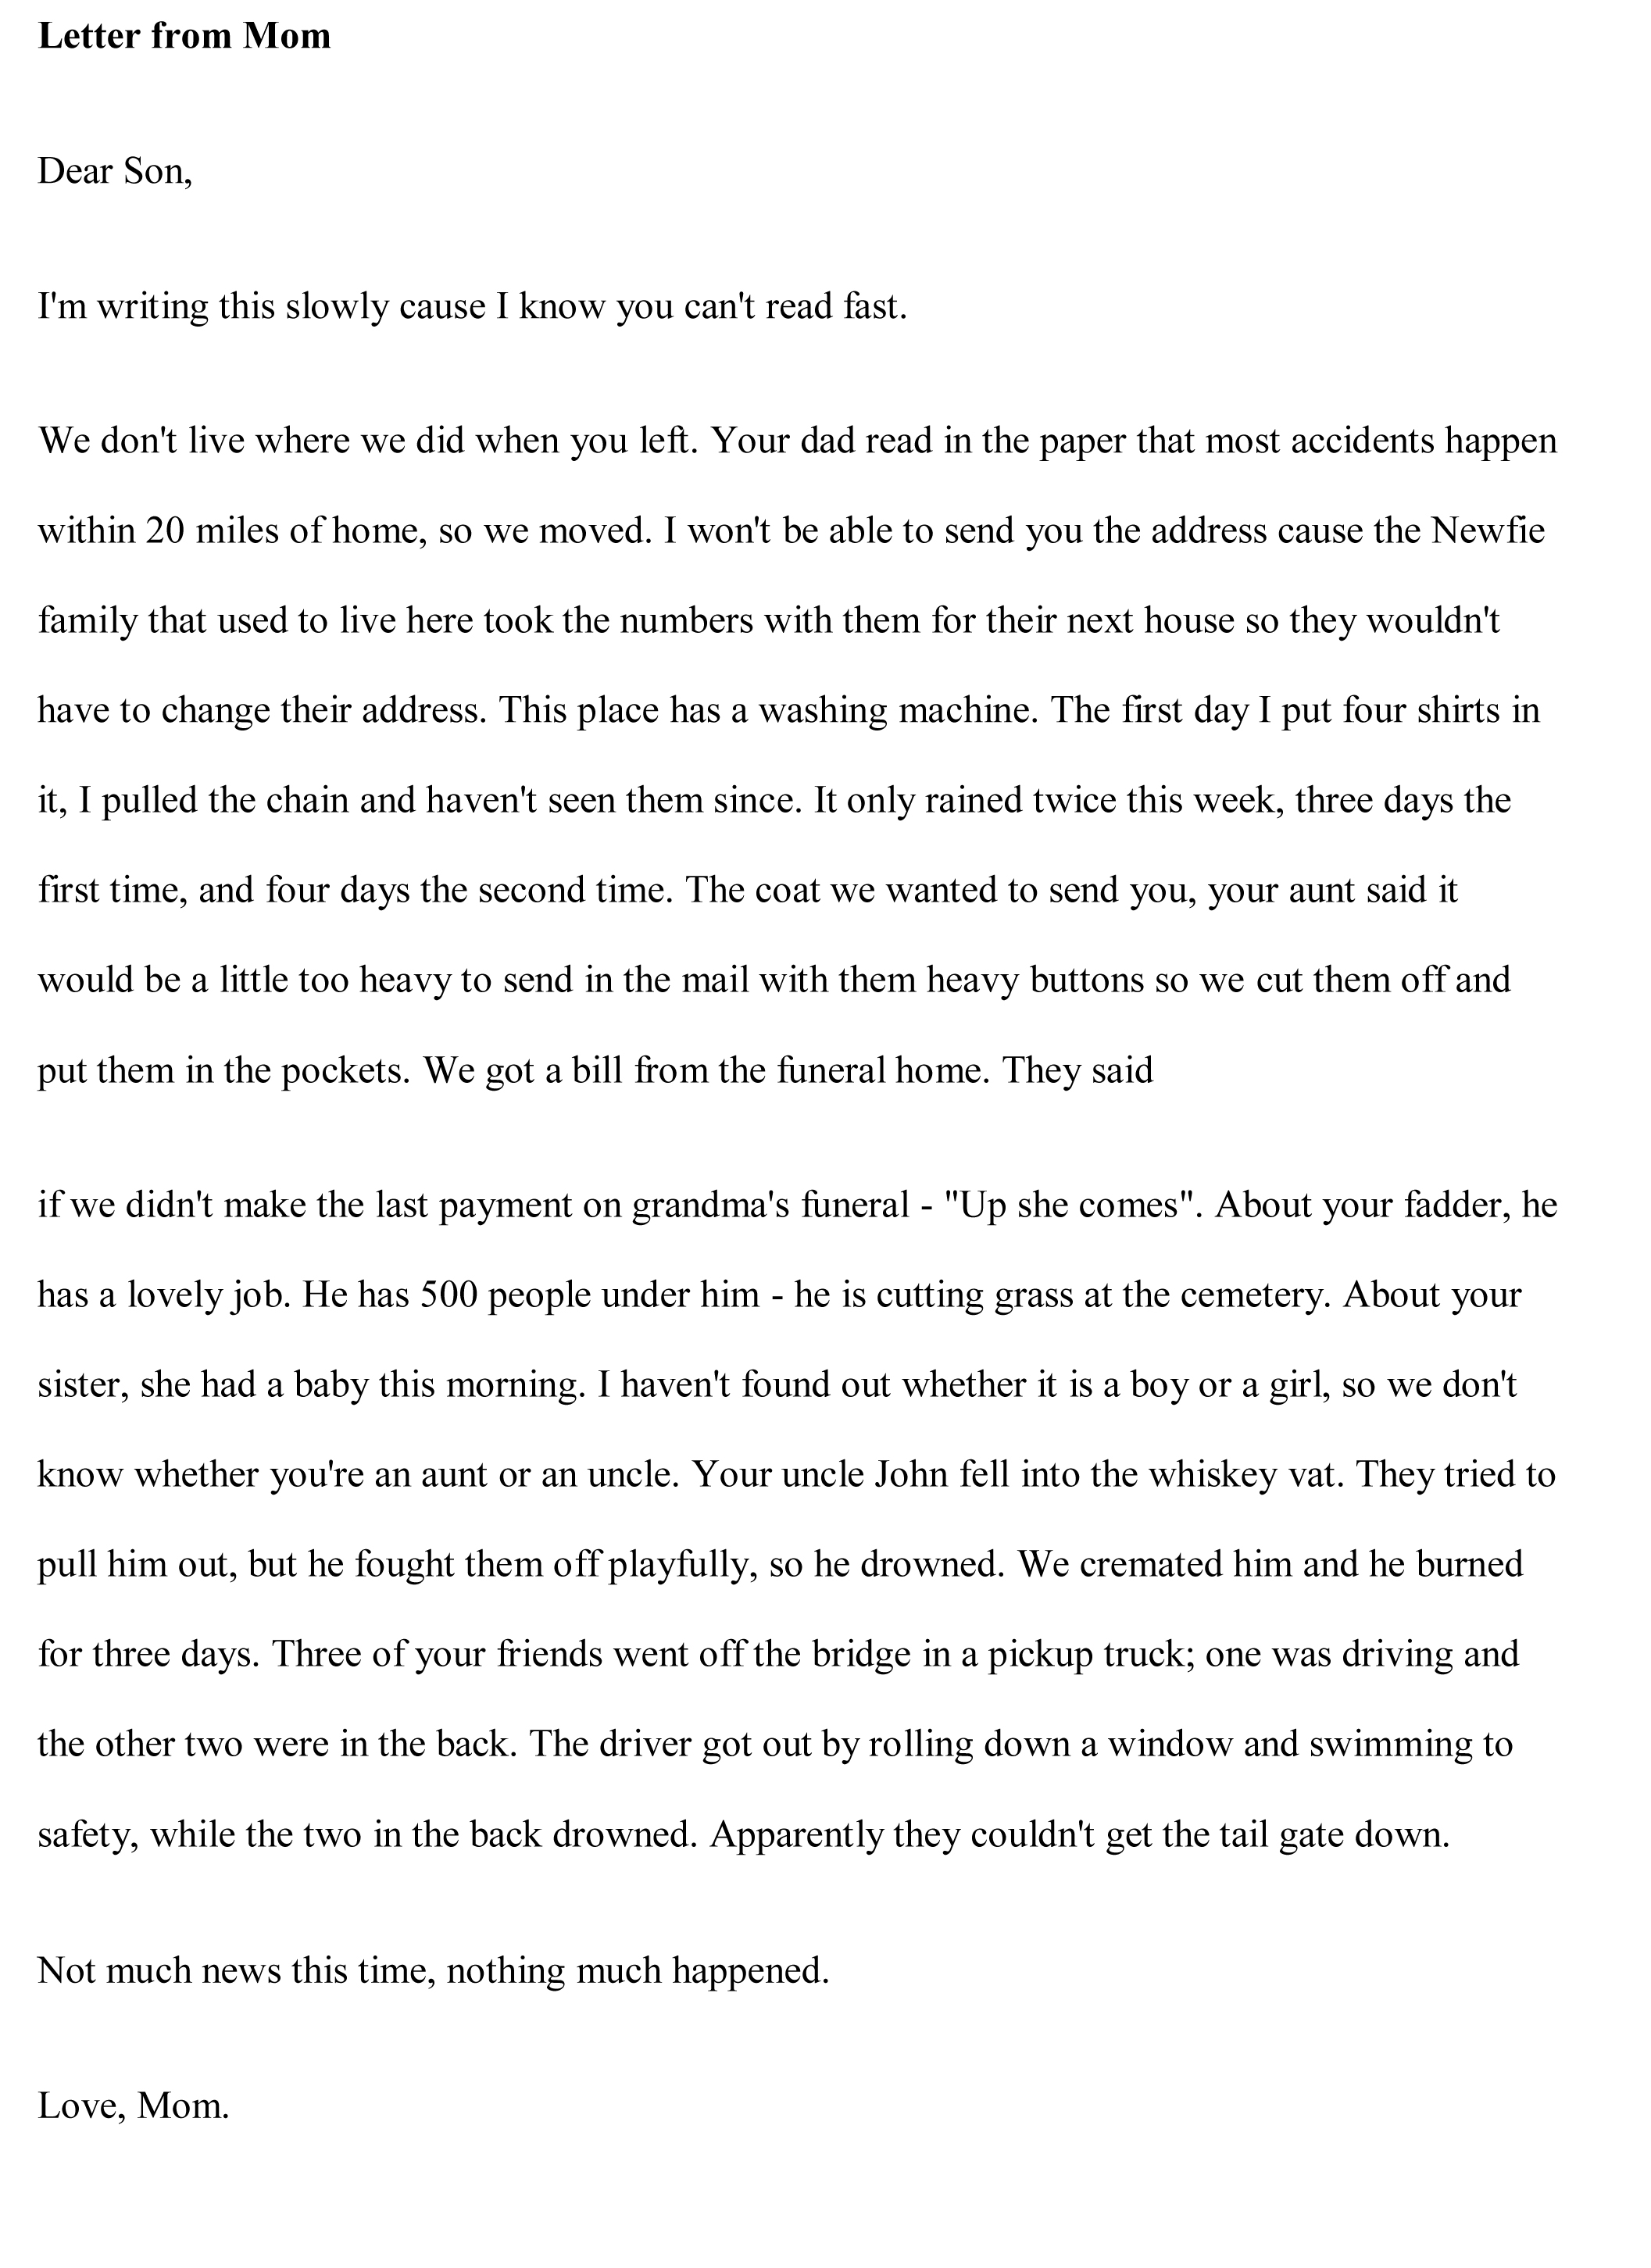 015 Interesting Essay Topics Example Funny Free Amazing Descriptive To Write About For Grade 8 In Urdu Synthesis Full